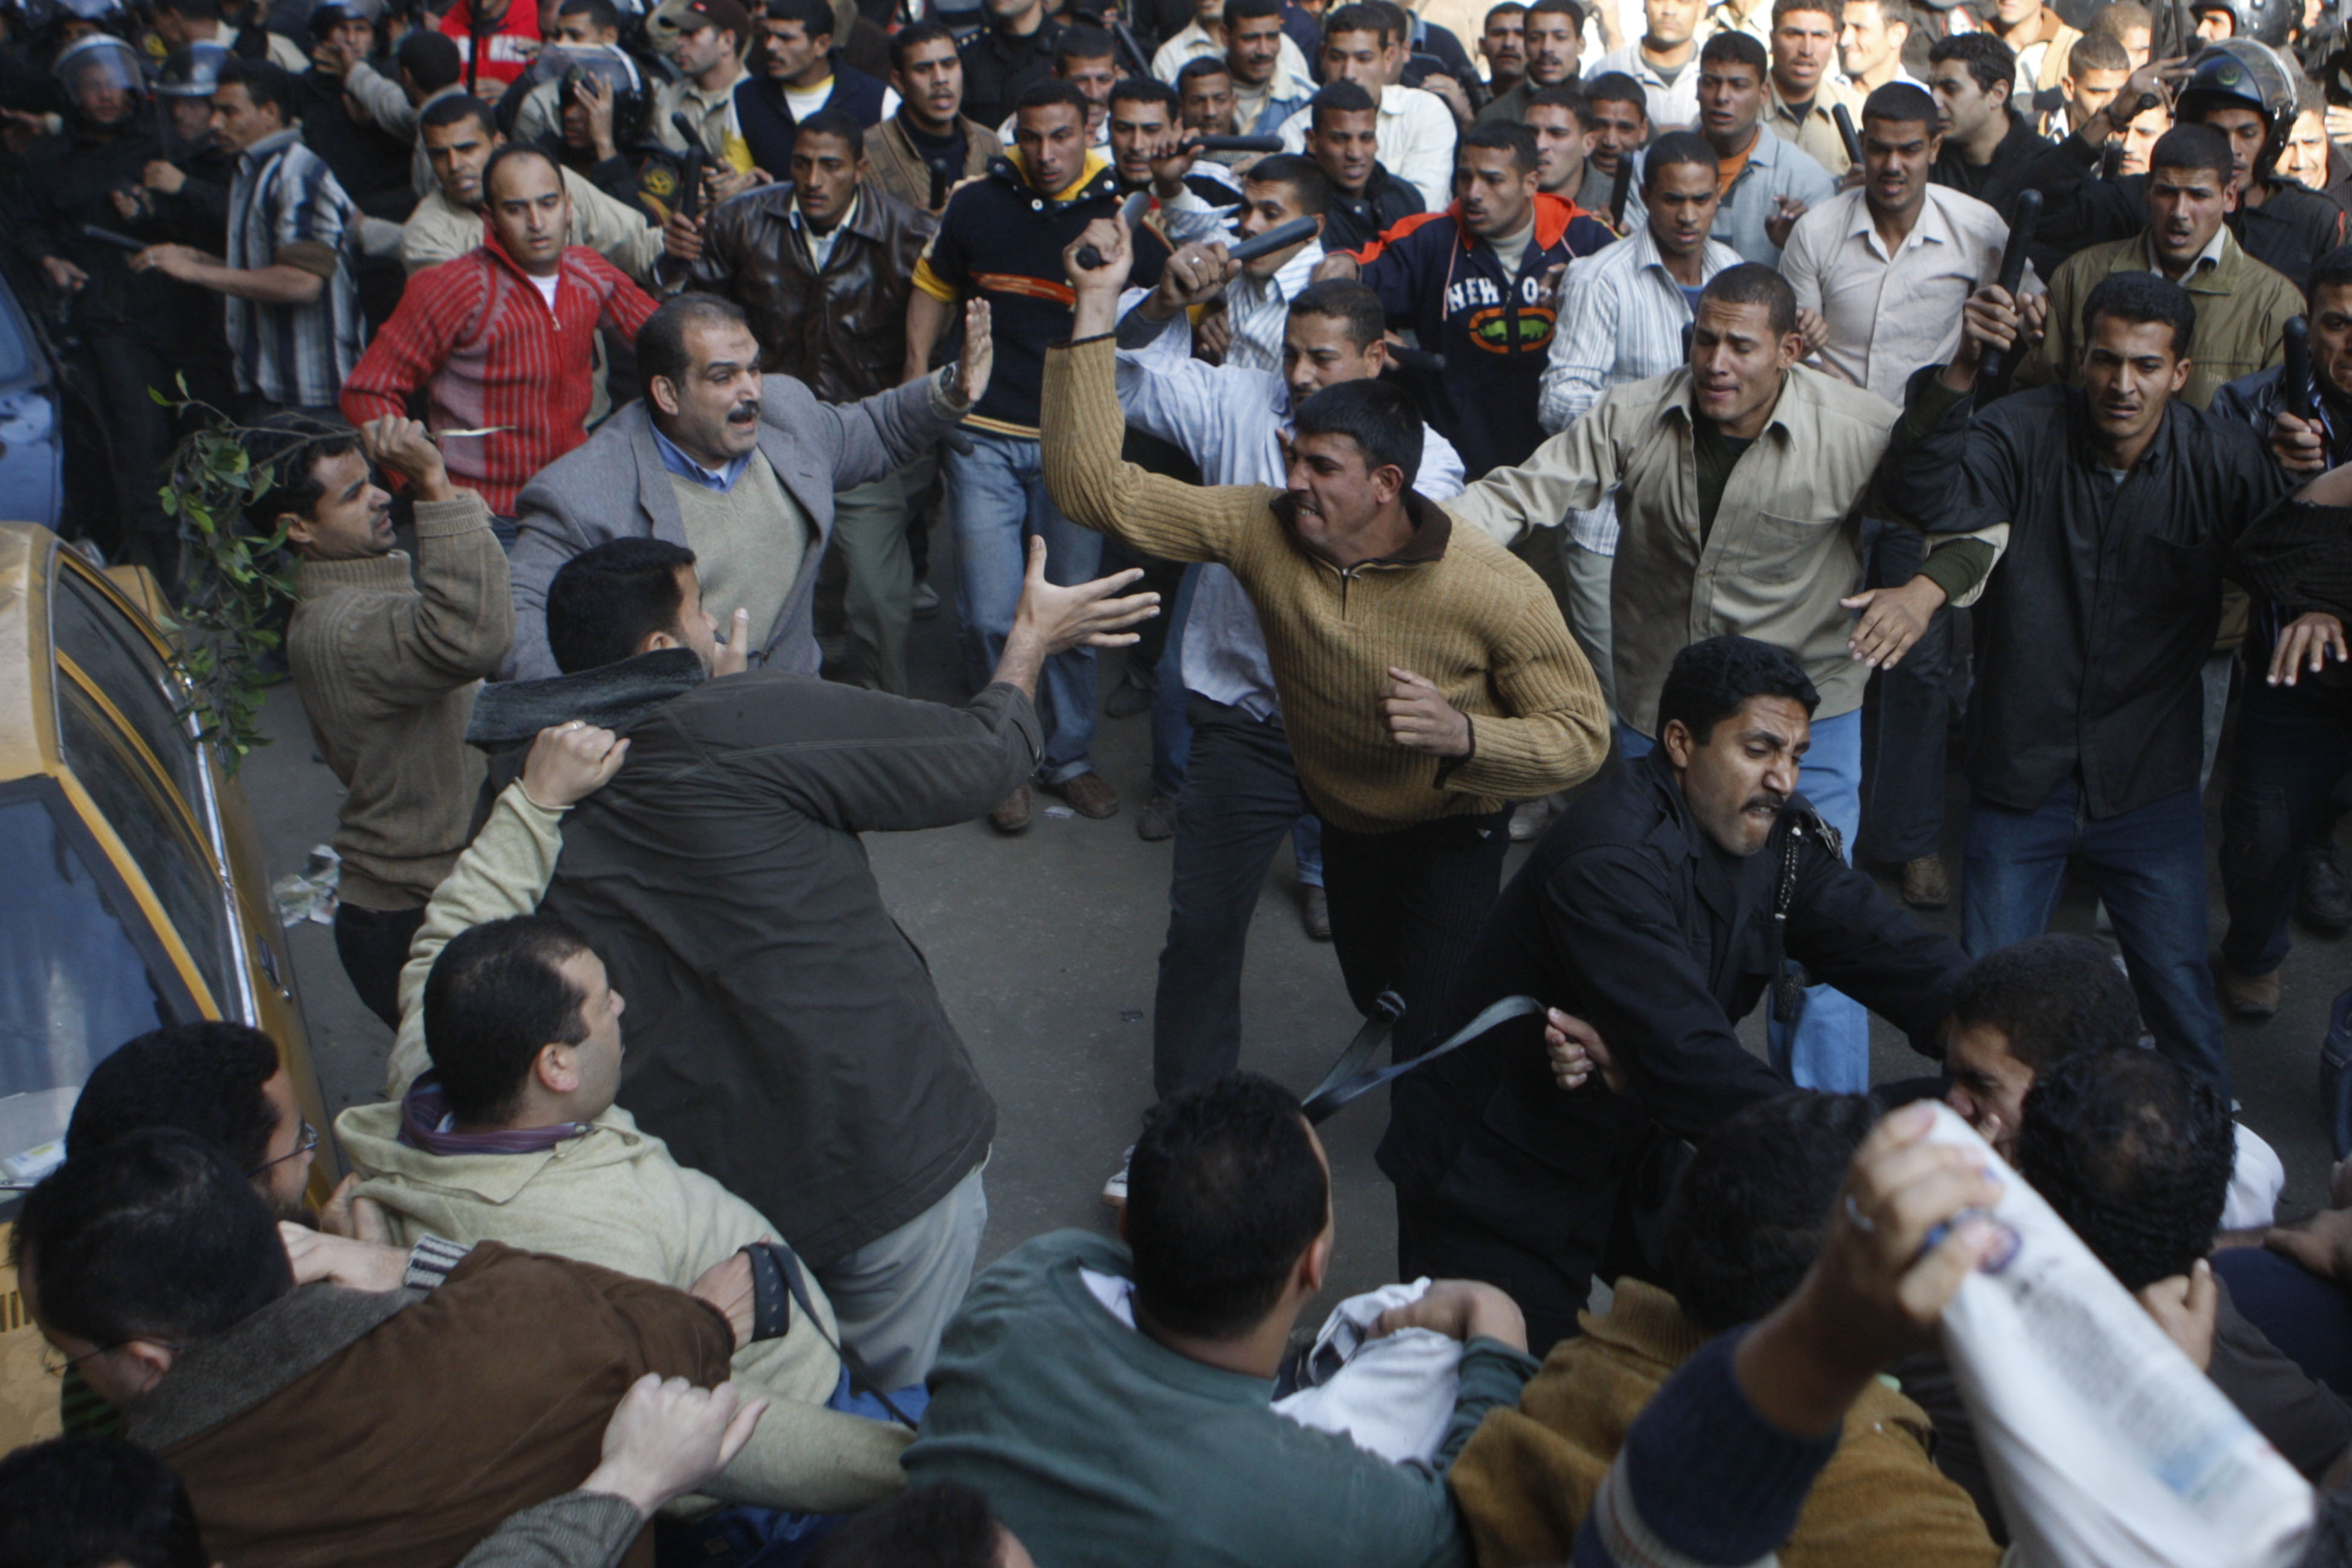 Plainclothes Police thugs assault pro-Gaza protesters in Ramses Square. Photo by Nasser Nouri, taken on 2 December 2008